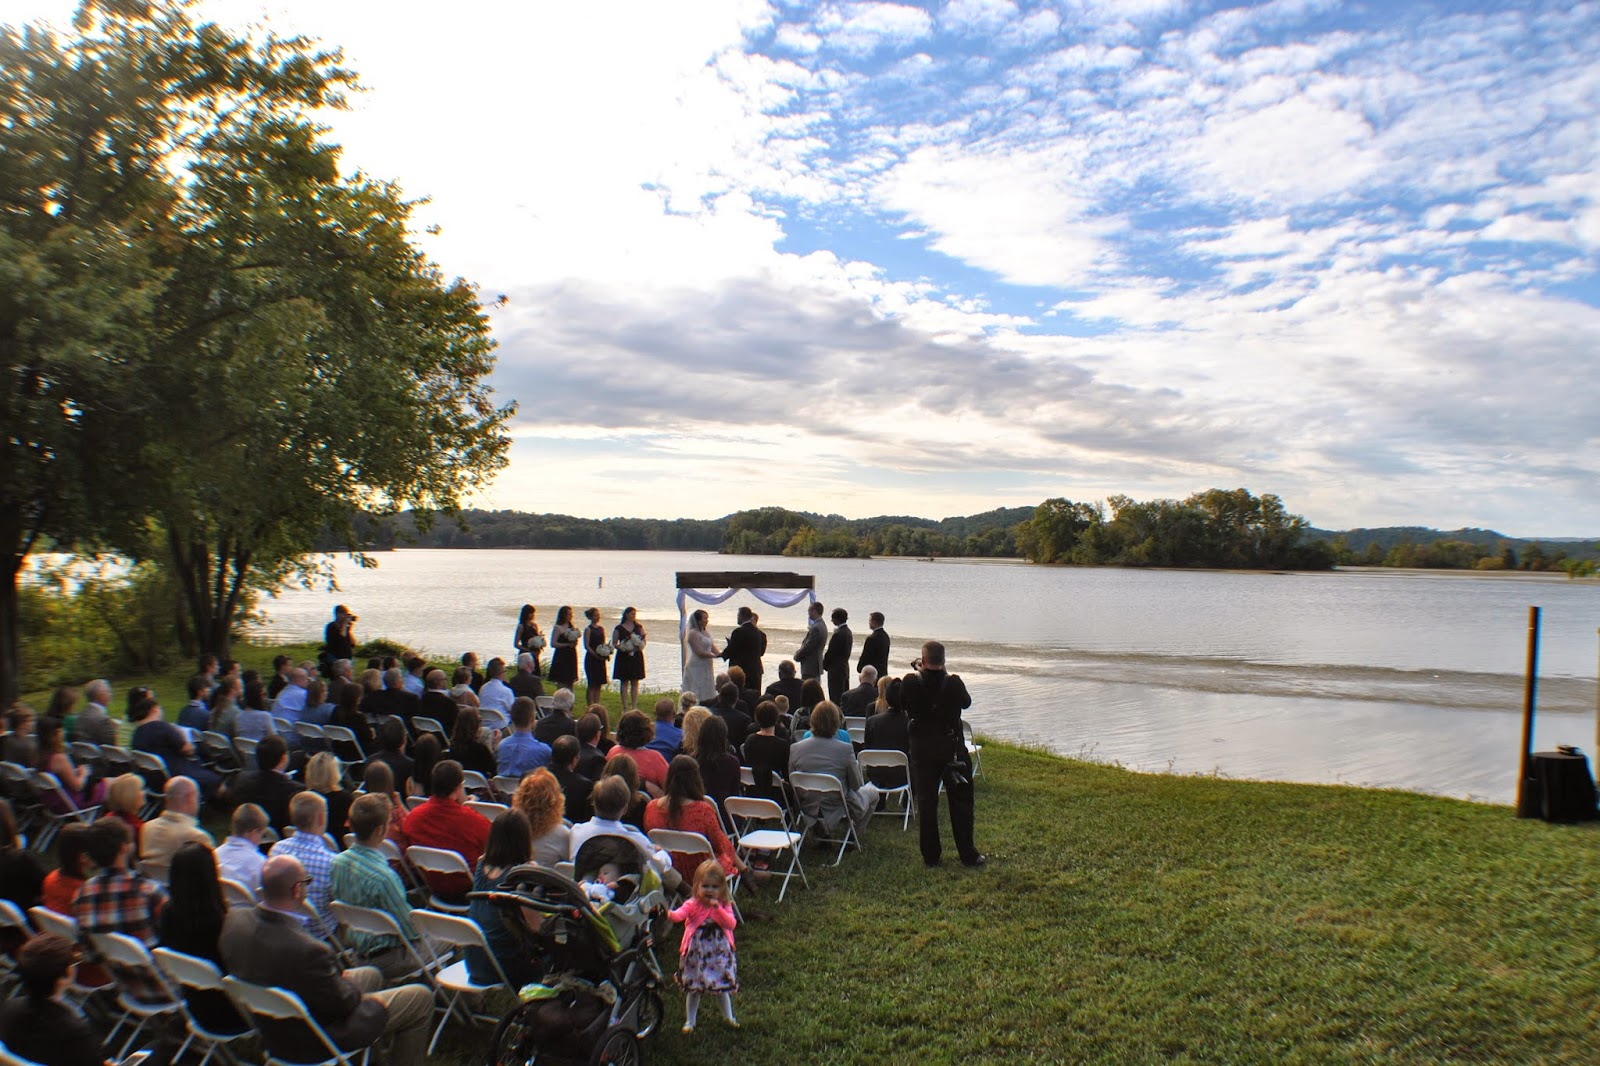 With Class LLC Wedding Coordinators, Wedding Planners, Wedding DJs, Party DJs, Chattanooga DJs, Cleveland DJs, Dalton DJs – Island Cove Marina – Harrison, TN